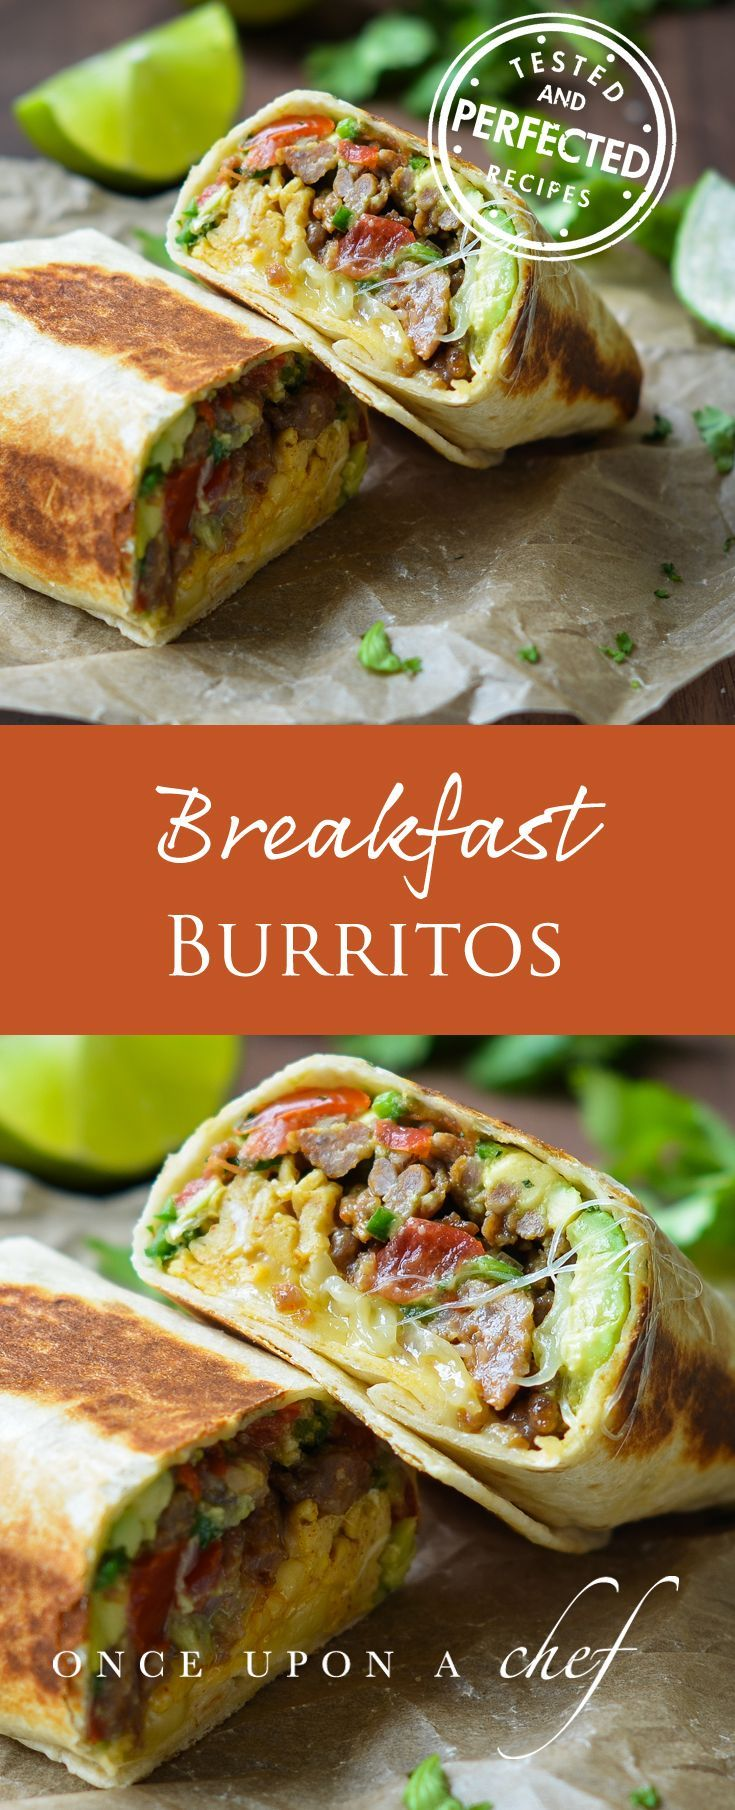 "Filled with spicy sausage, smoky scrambled eggs, cheese, and a bright, fresh avocado-tomato salsa, these breakfast burritos are not only easy to make, but also delicious any time of day. We especially love them for ""brinner."" #breakfast #breakfastfordinner #burritos #testedandperfected"